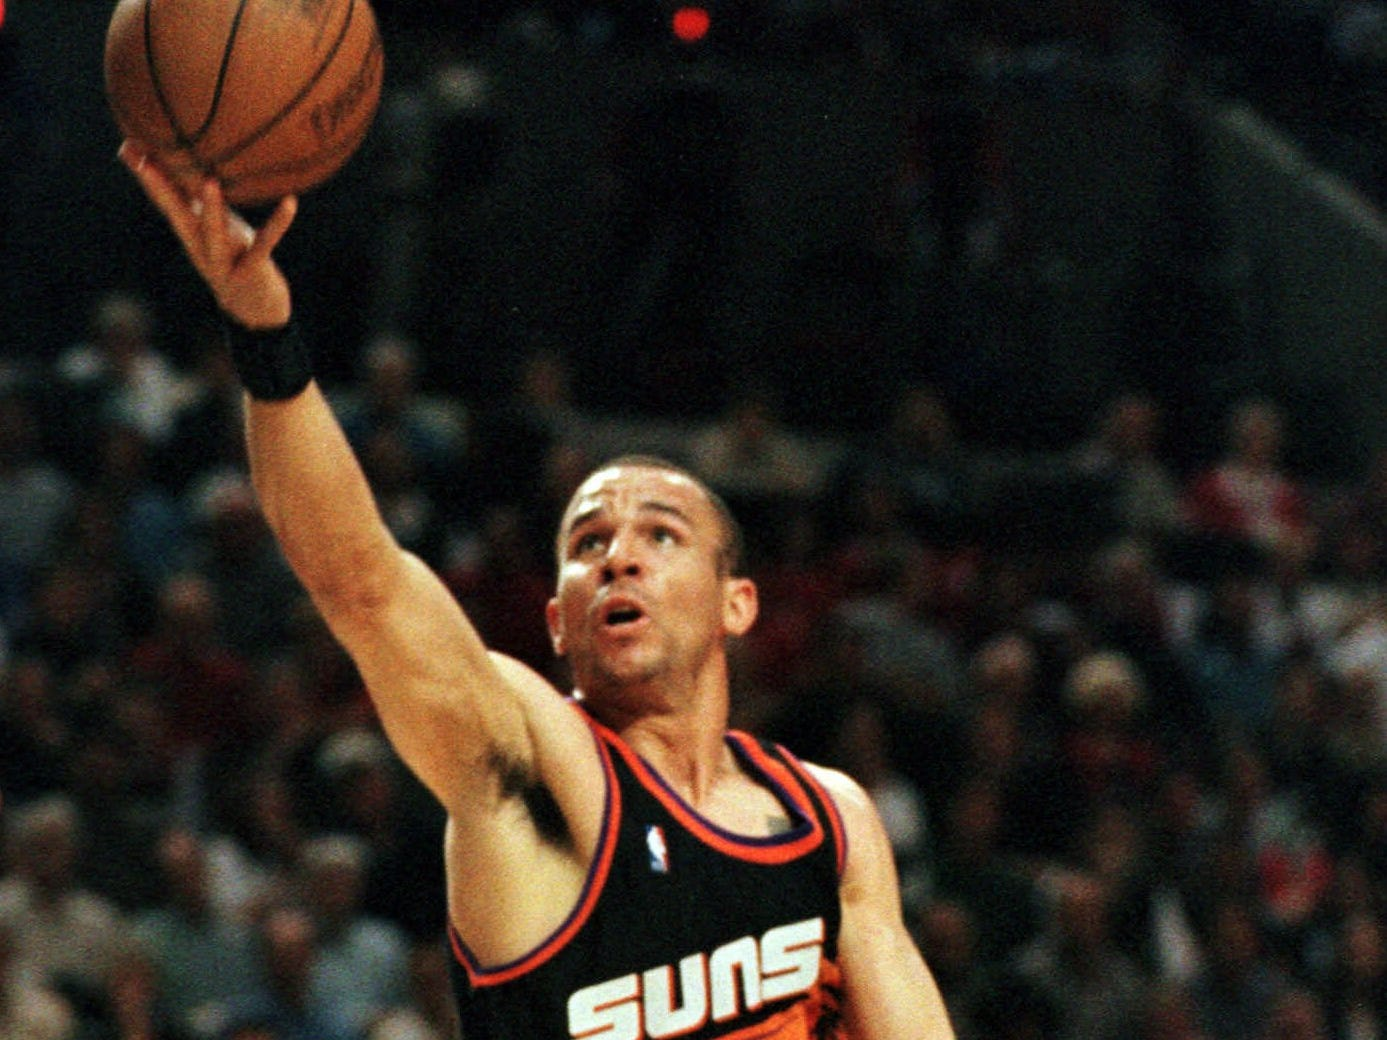 1999-00 | Suns MVP: Jason Kidd (seen the previous season). Five triple-doubles for Kidd, who led the Suns back to 50 wins.